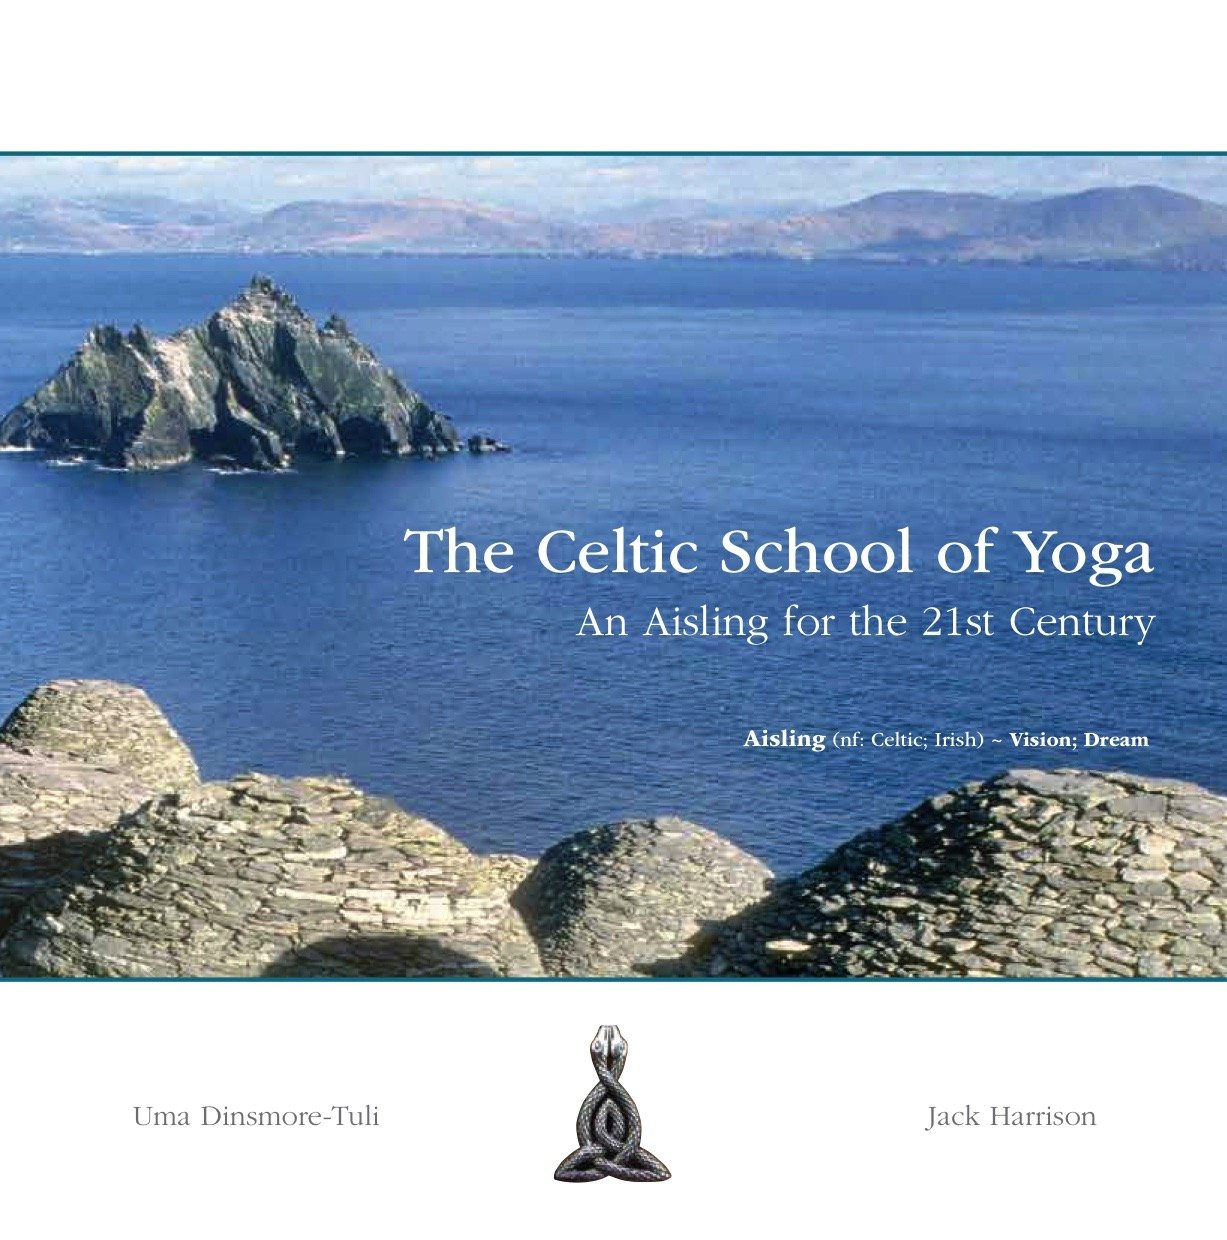 The Celtic School of Yoga: An Aisling for the 21st Century